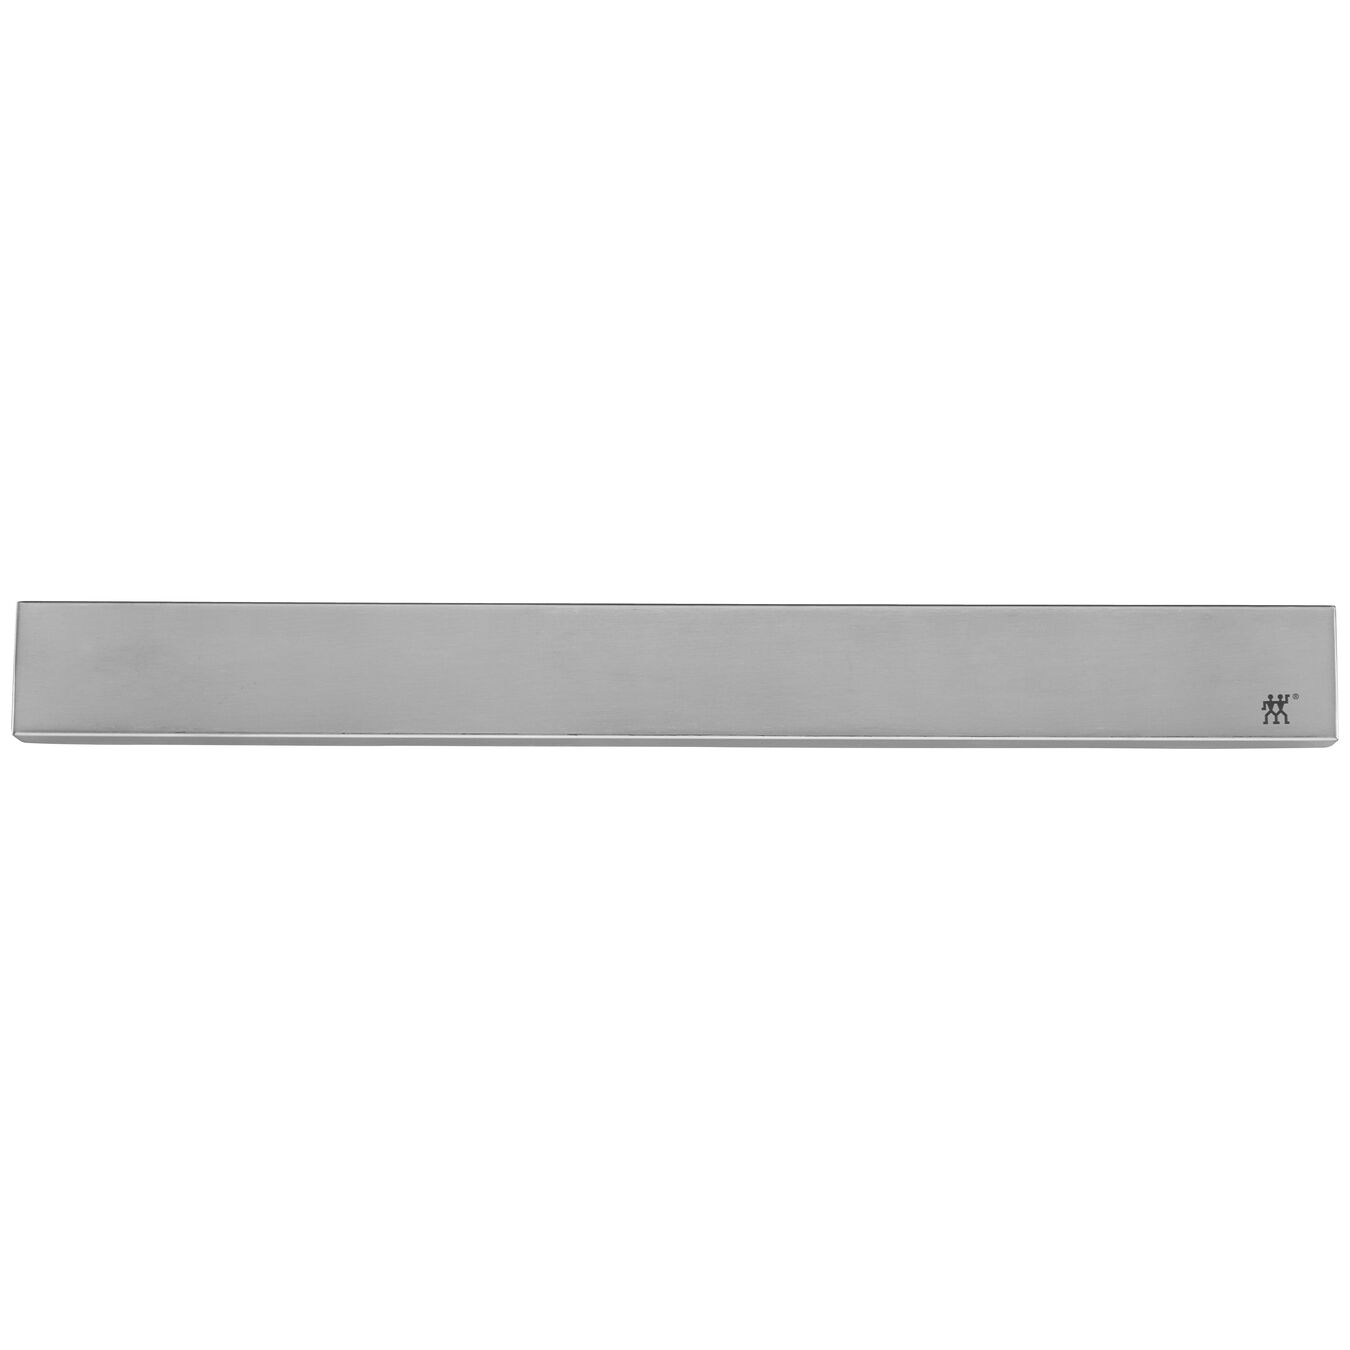 17.75-inch Stainless Steel,,large 1